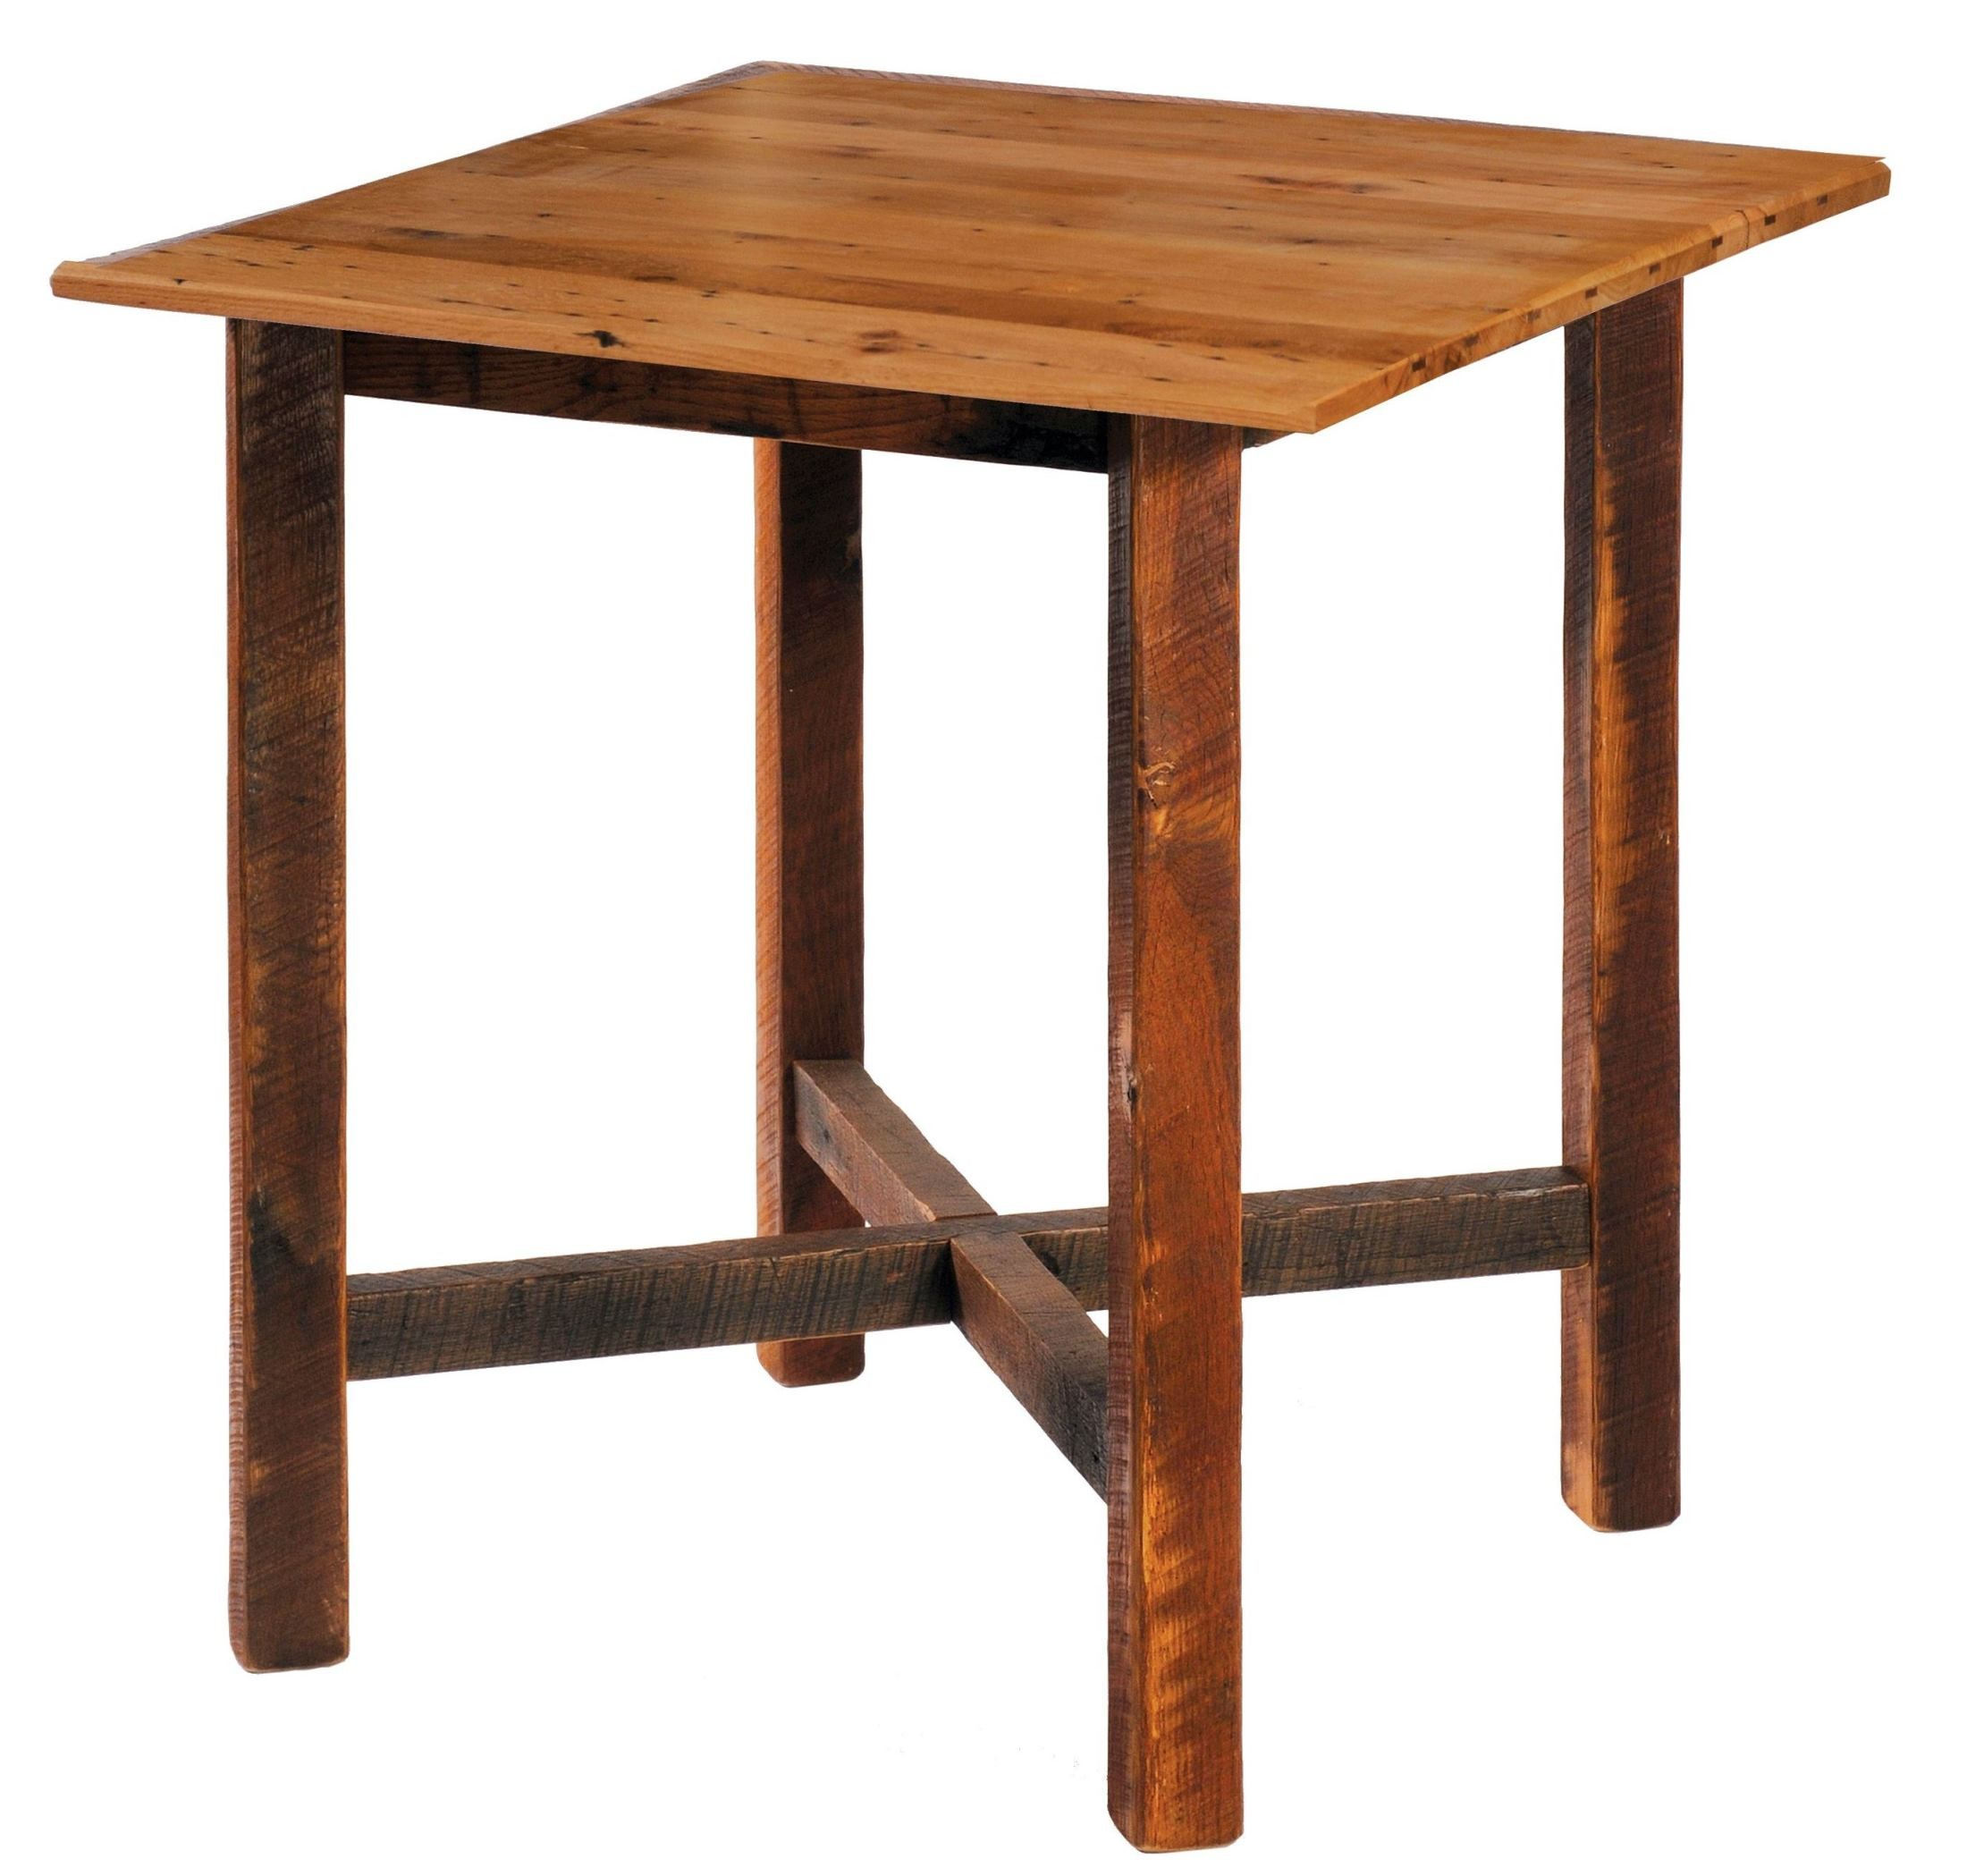 Barnwood 40 antique oak top square pub table from for 1 oak nyc table prices